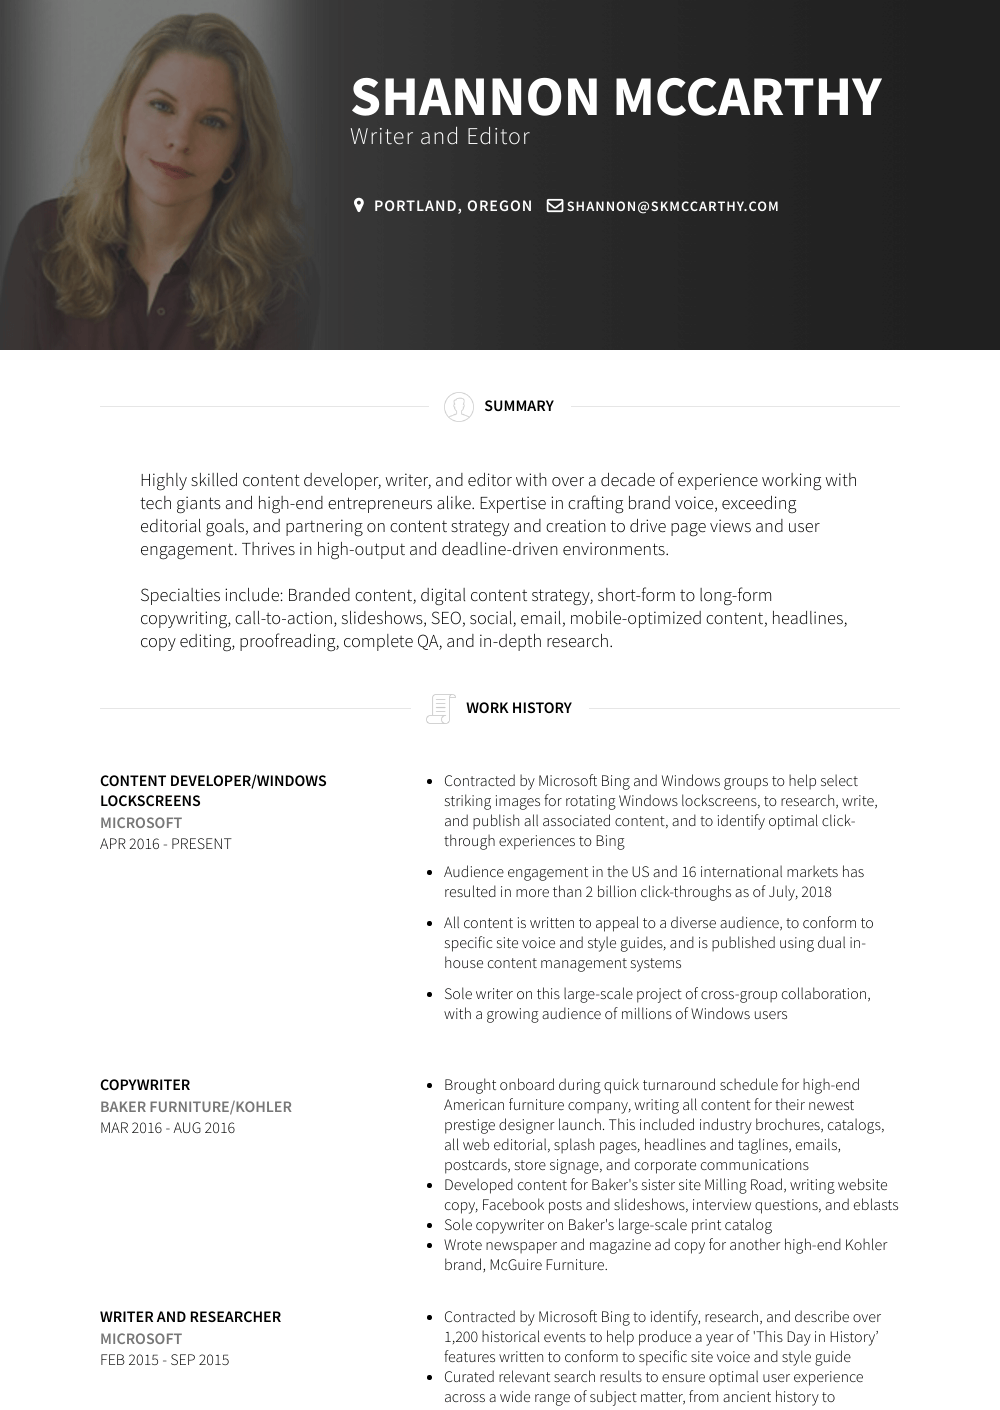 Freelance Copywriter - Resume Samples & Templates | VisualCV